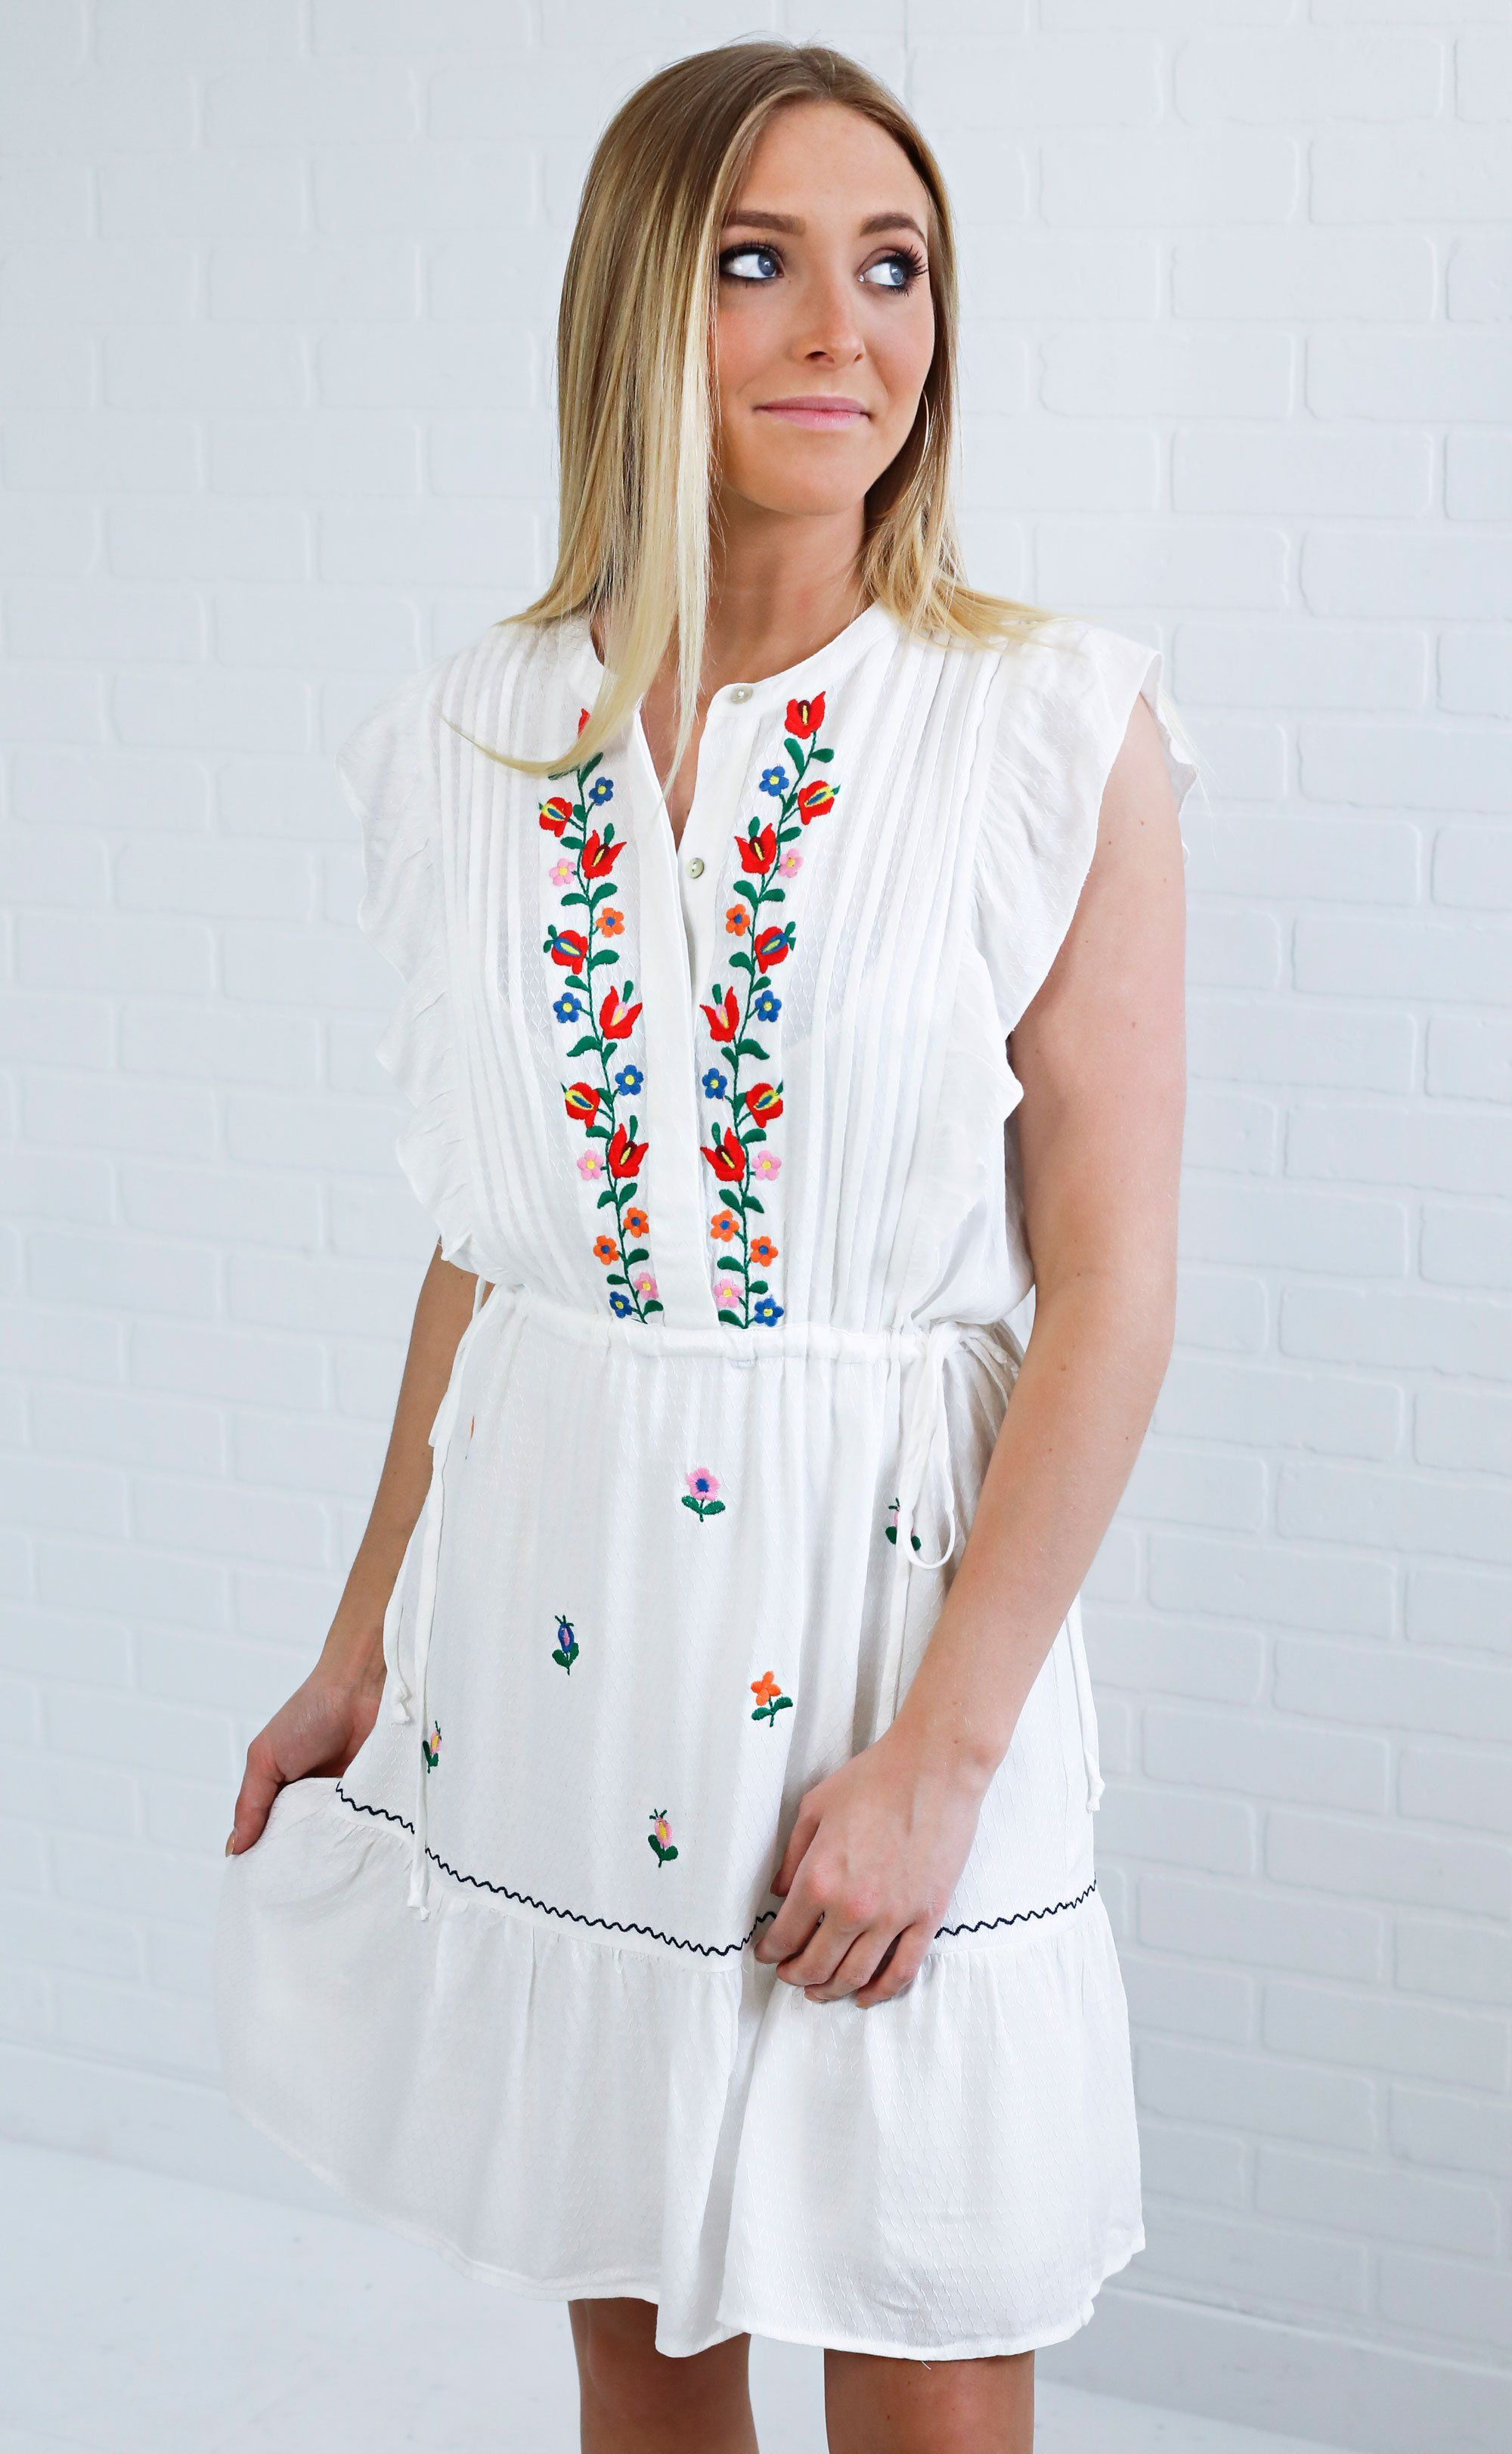 39e9aee42a17 Nothing beats a cute embroidered dress! This one features a button up  placket and has a cinched waist to keep things looking so flattering.